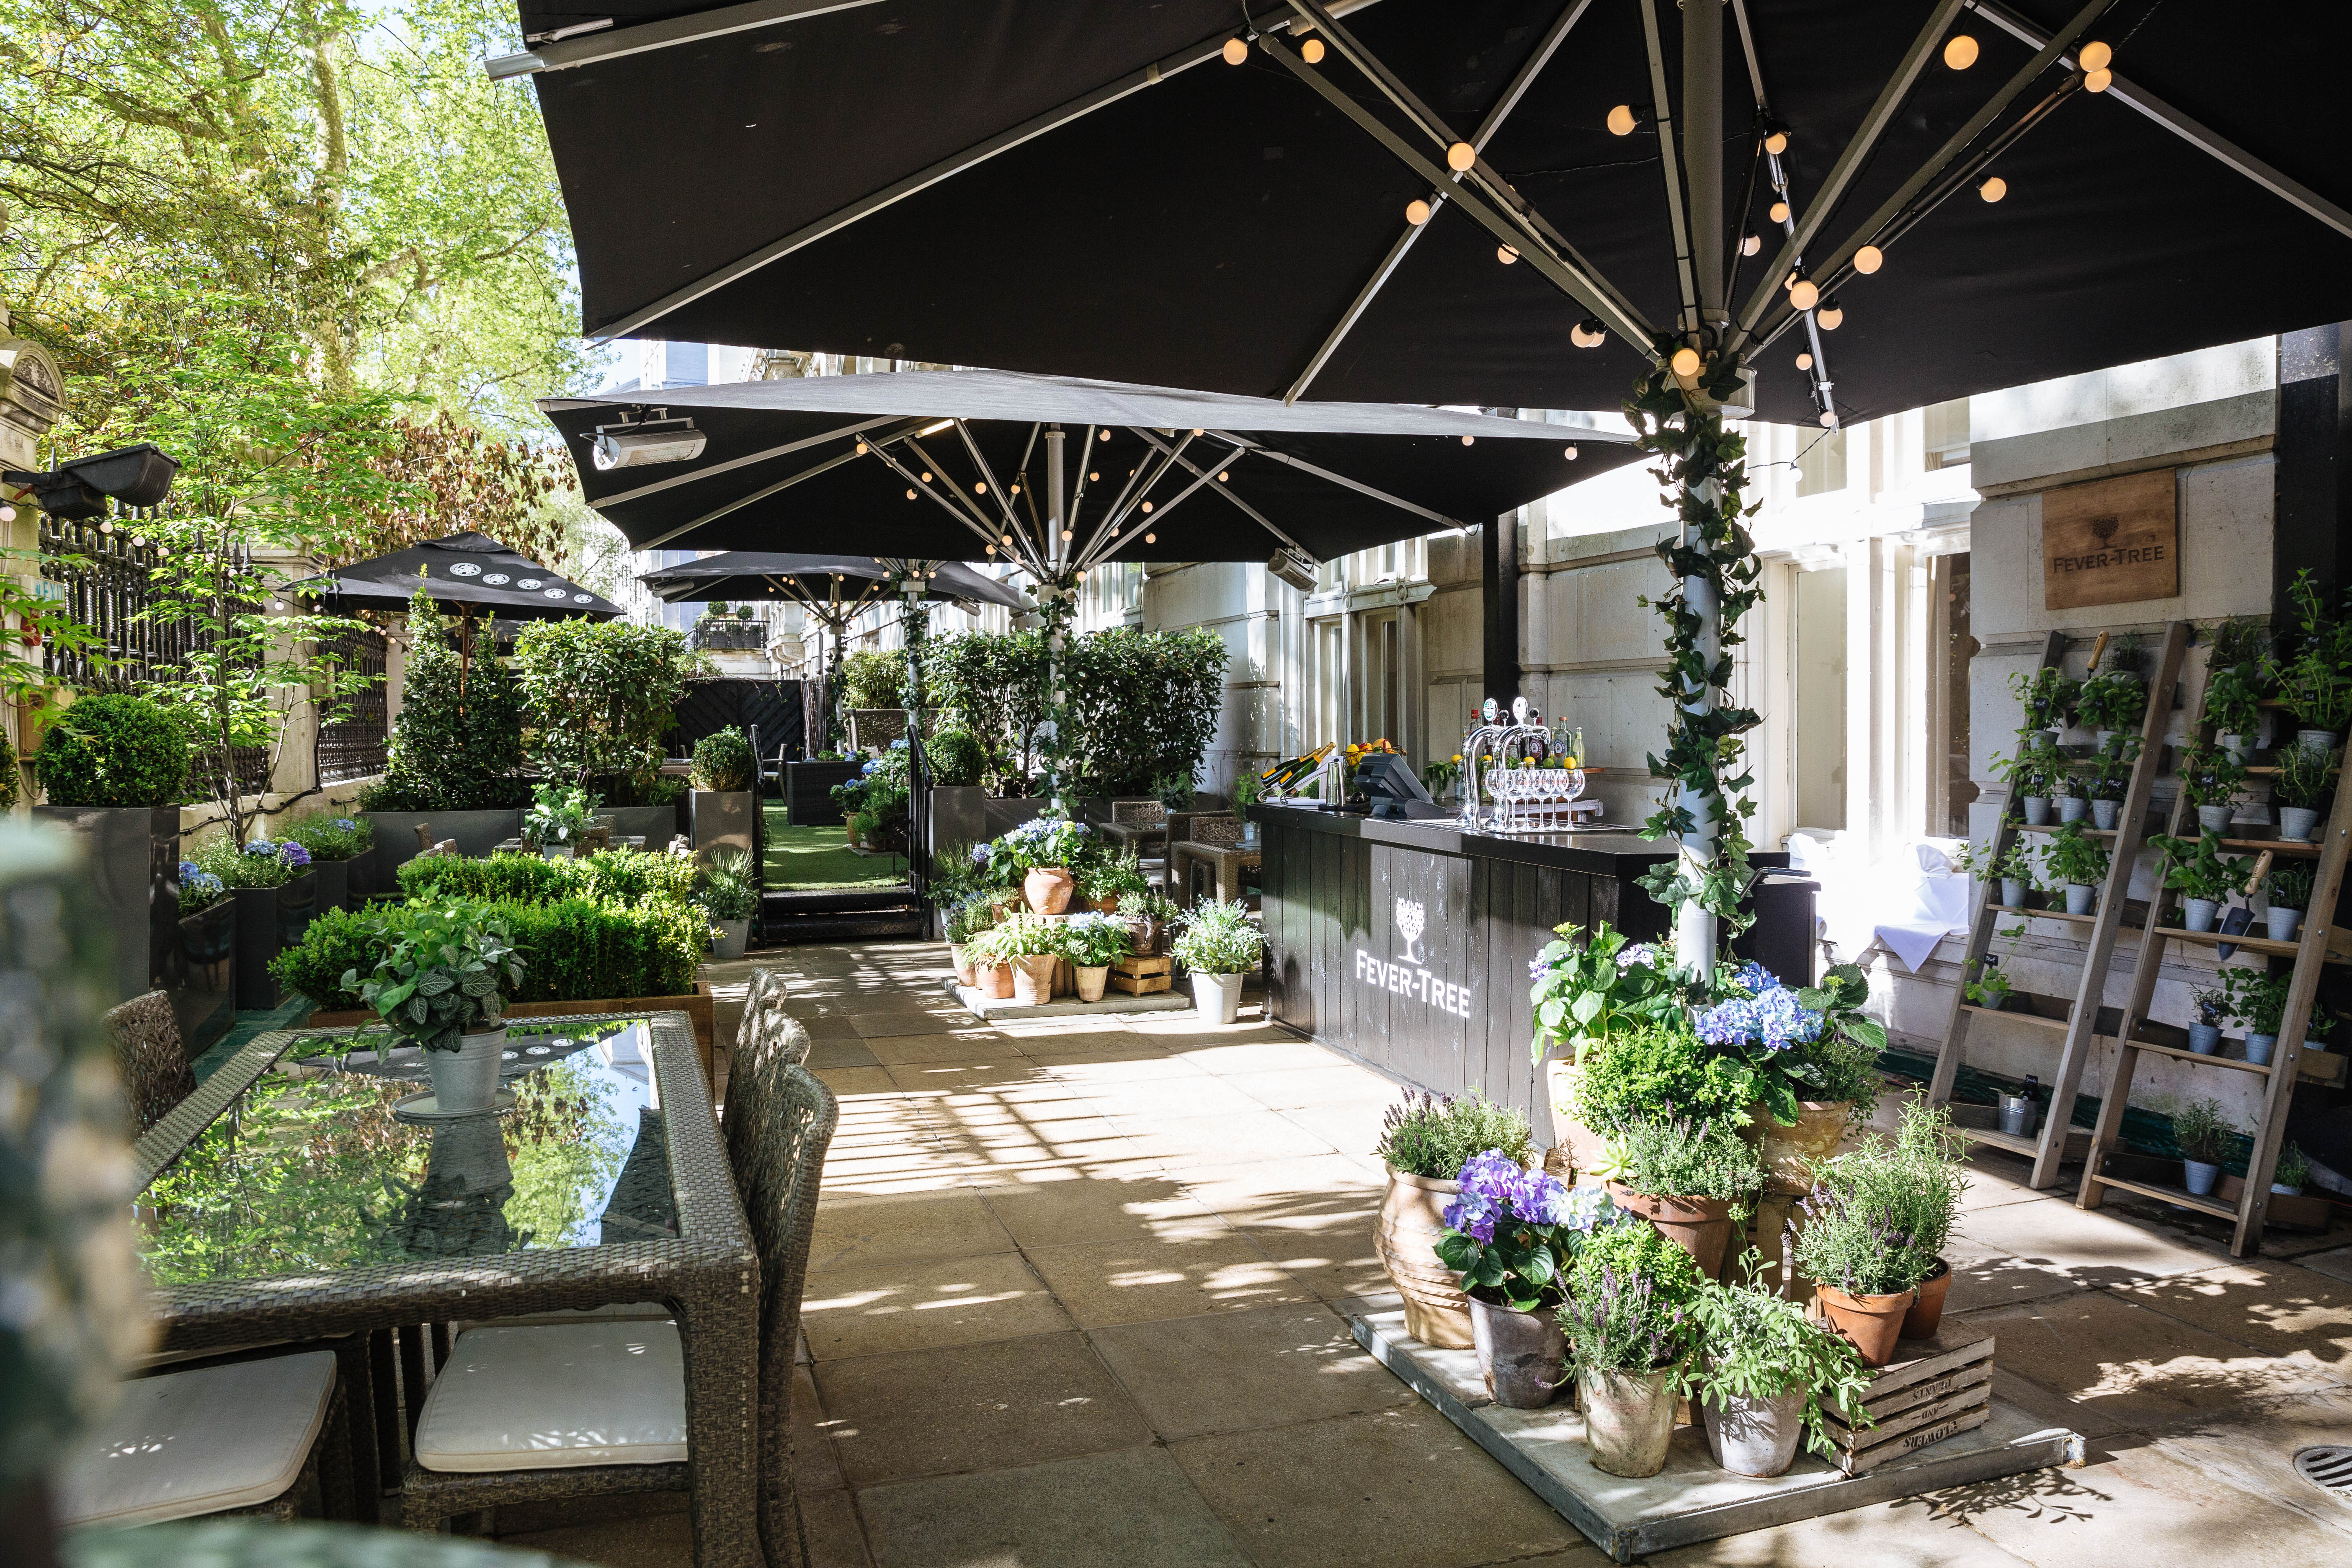 Image of The Terrace at The Royal Horseguards